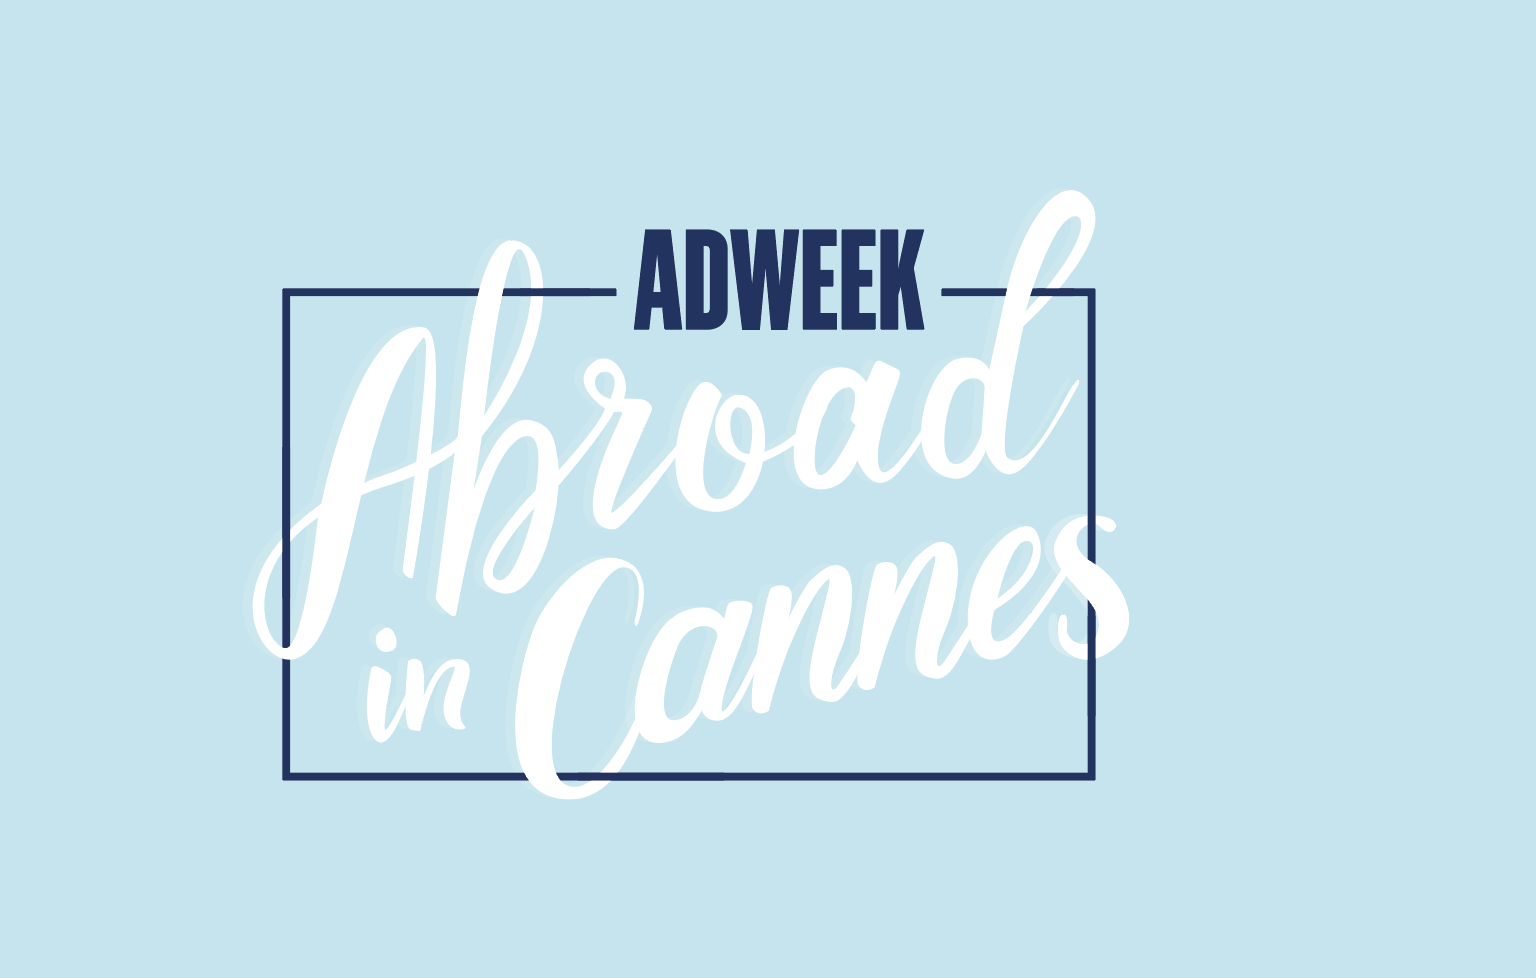 Adweek Abroad in Cannes